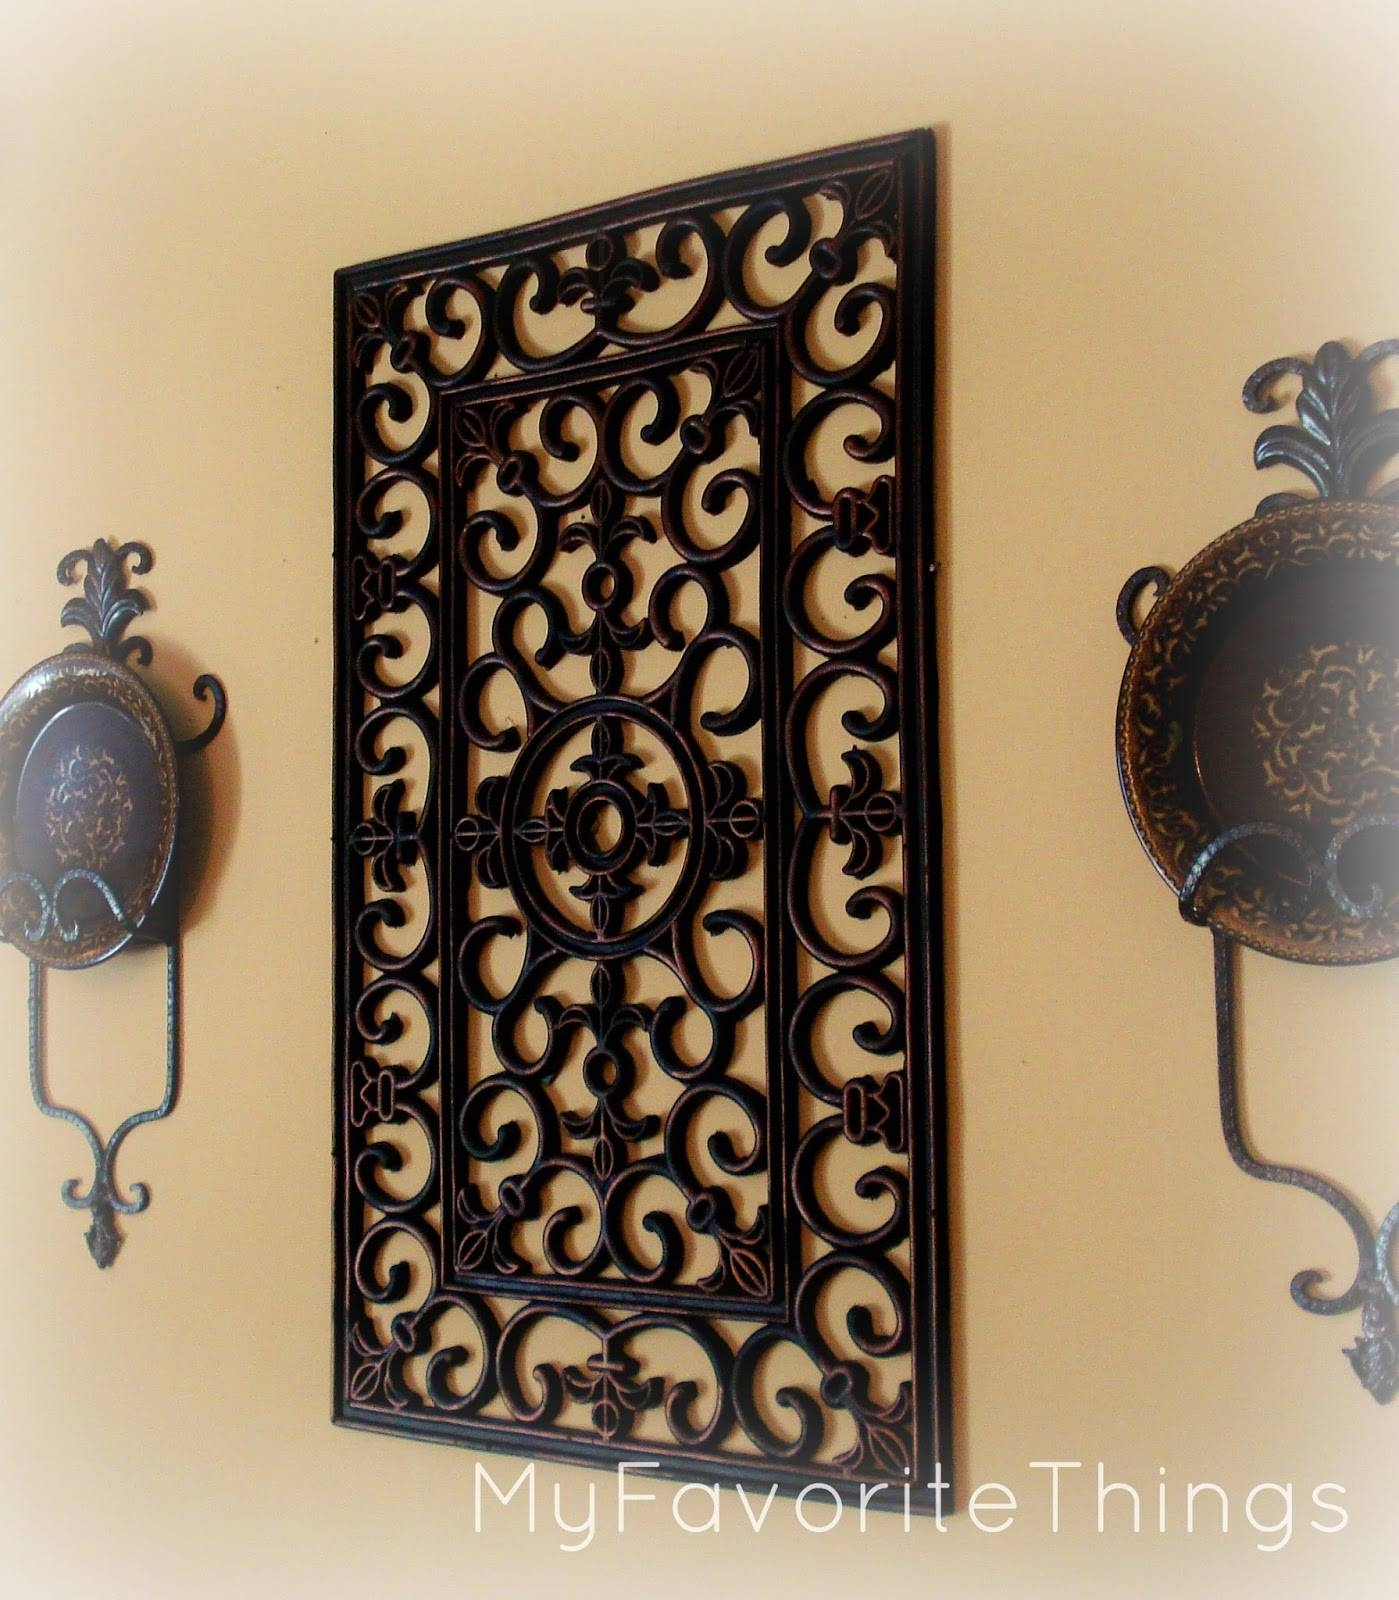 Wall Decor: Top 20 Rustic Wrought Iron Wall Decor How To Hang Within Latest Wrought Iron Garden Wall Art (View 16 of 25)